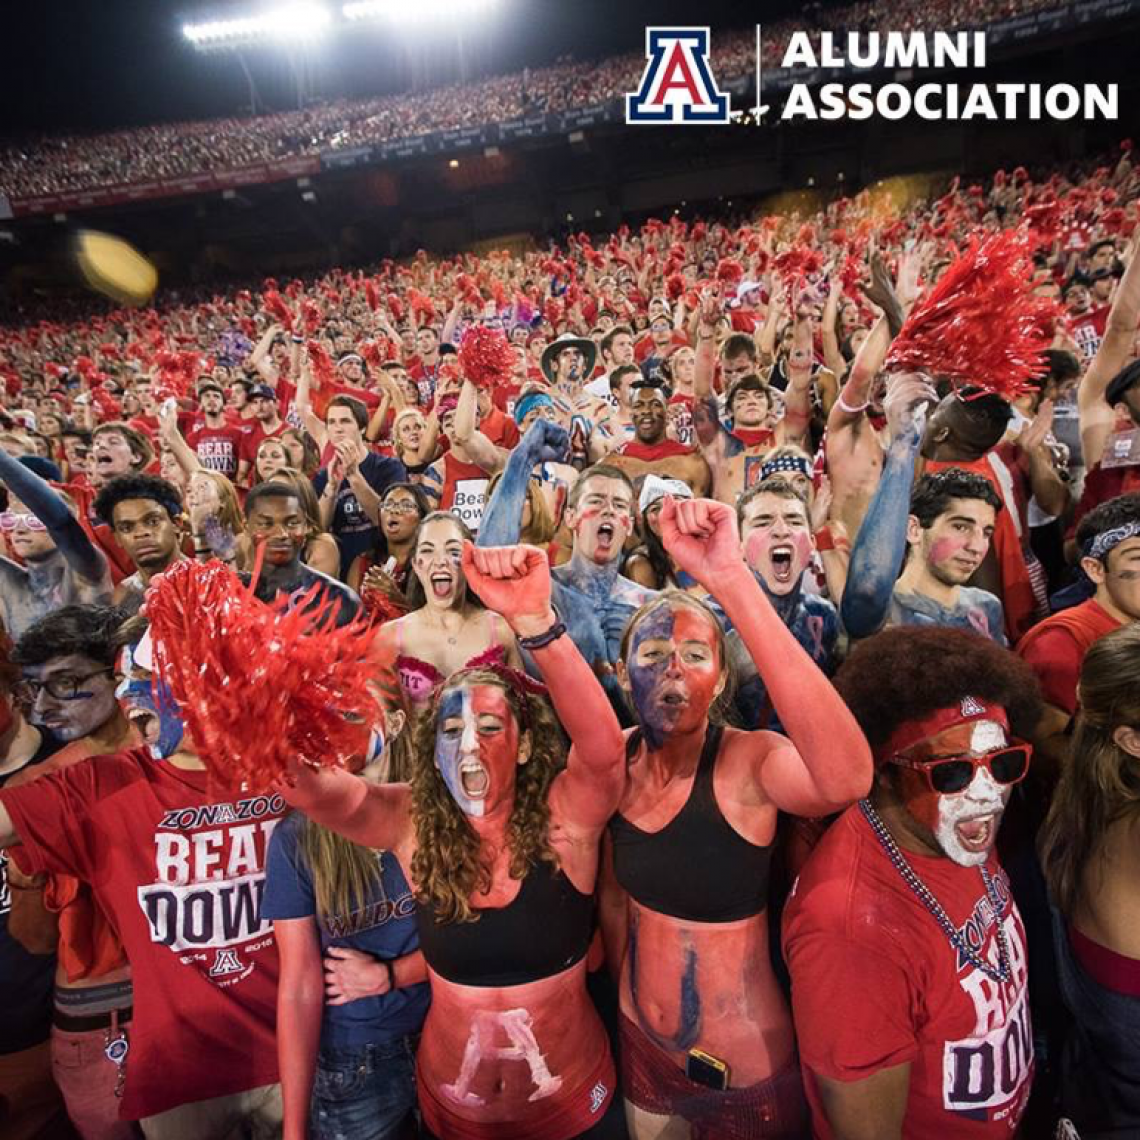 Leah Kaplan  let her school spirit show at UA football games.